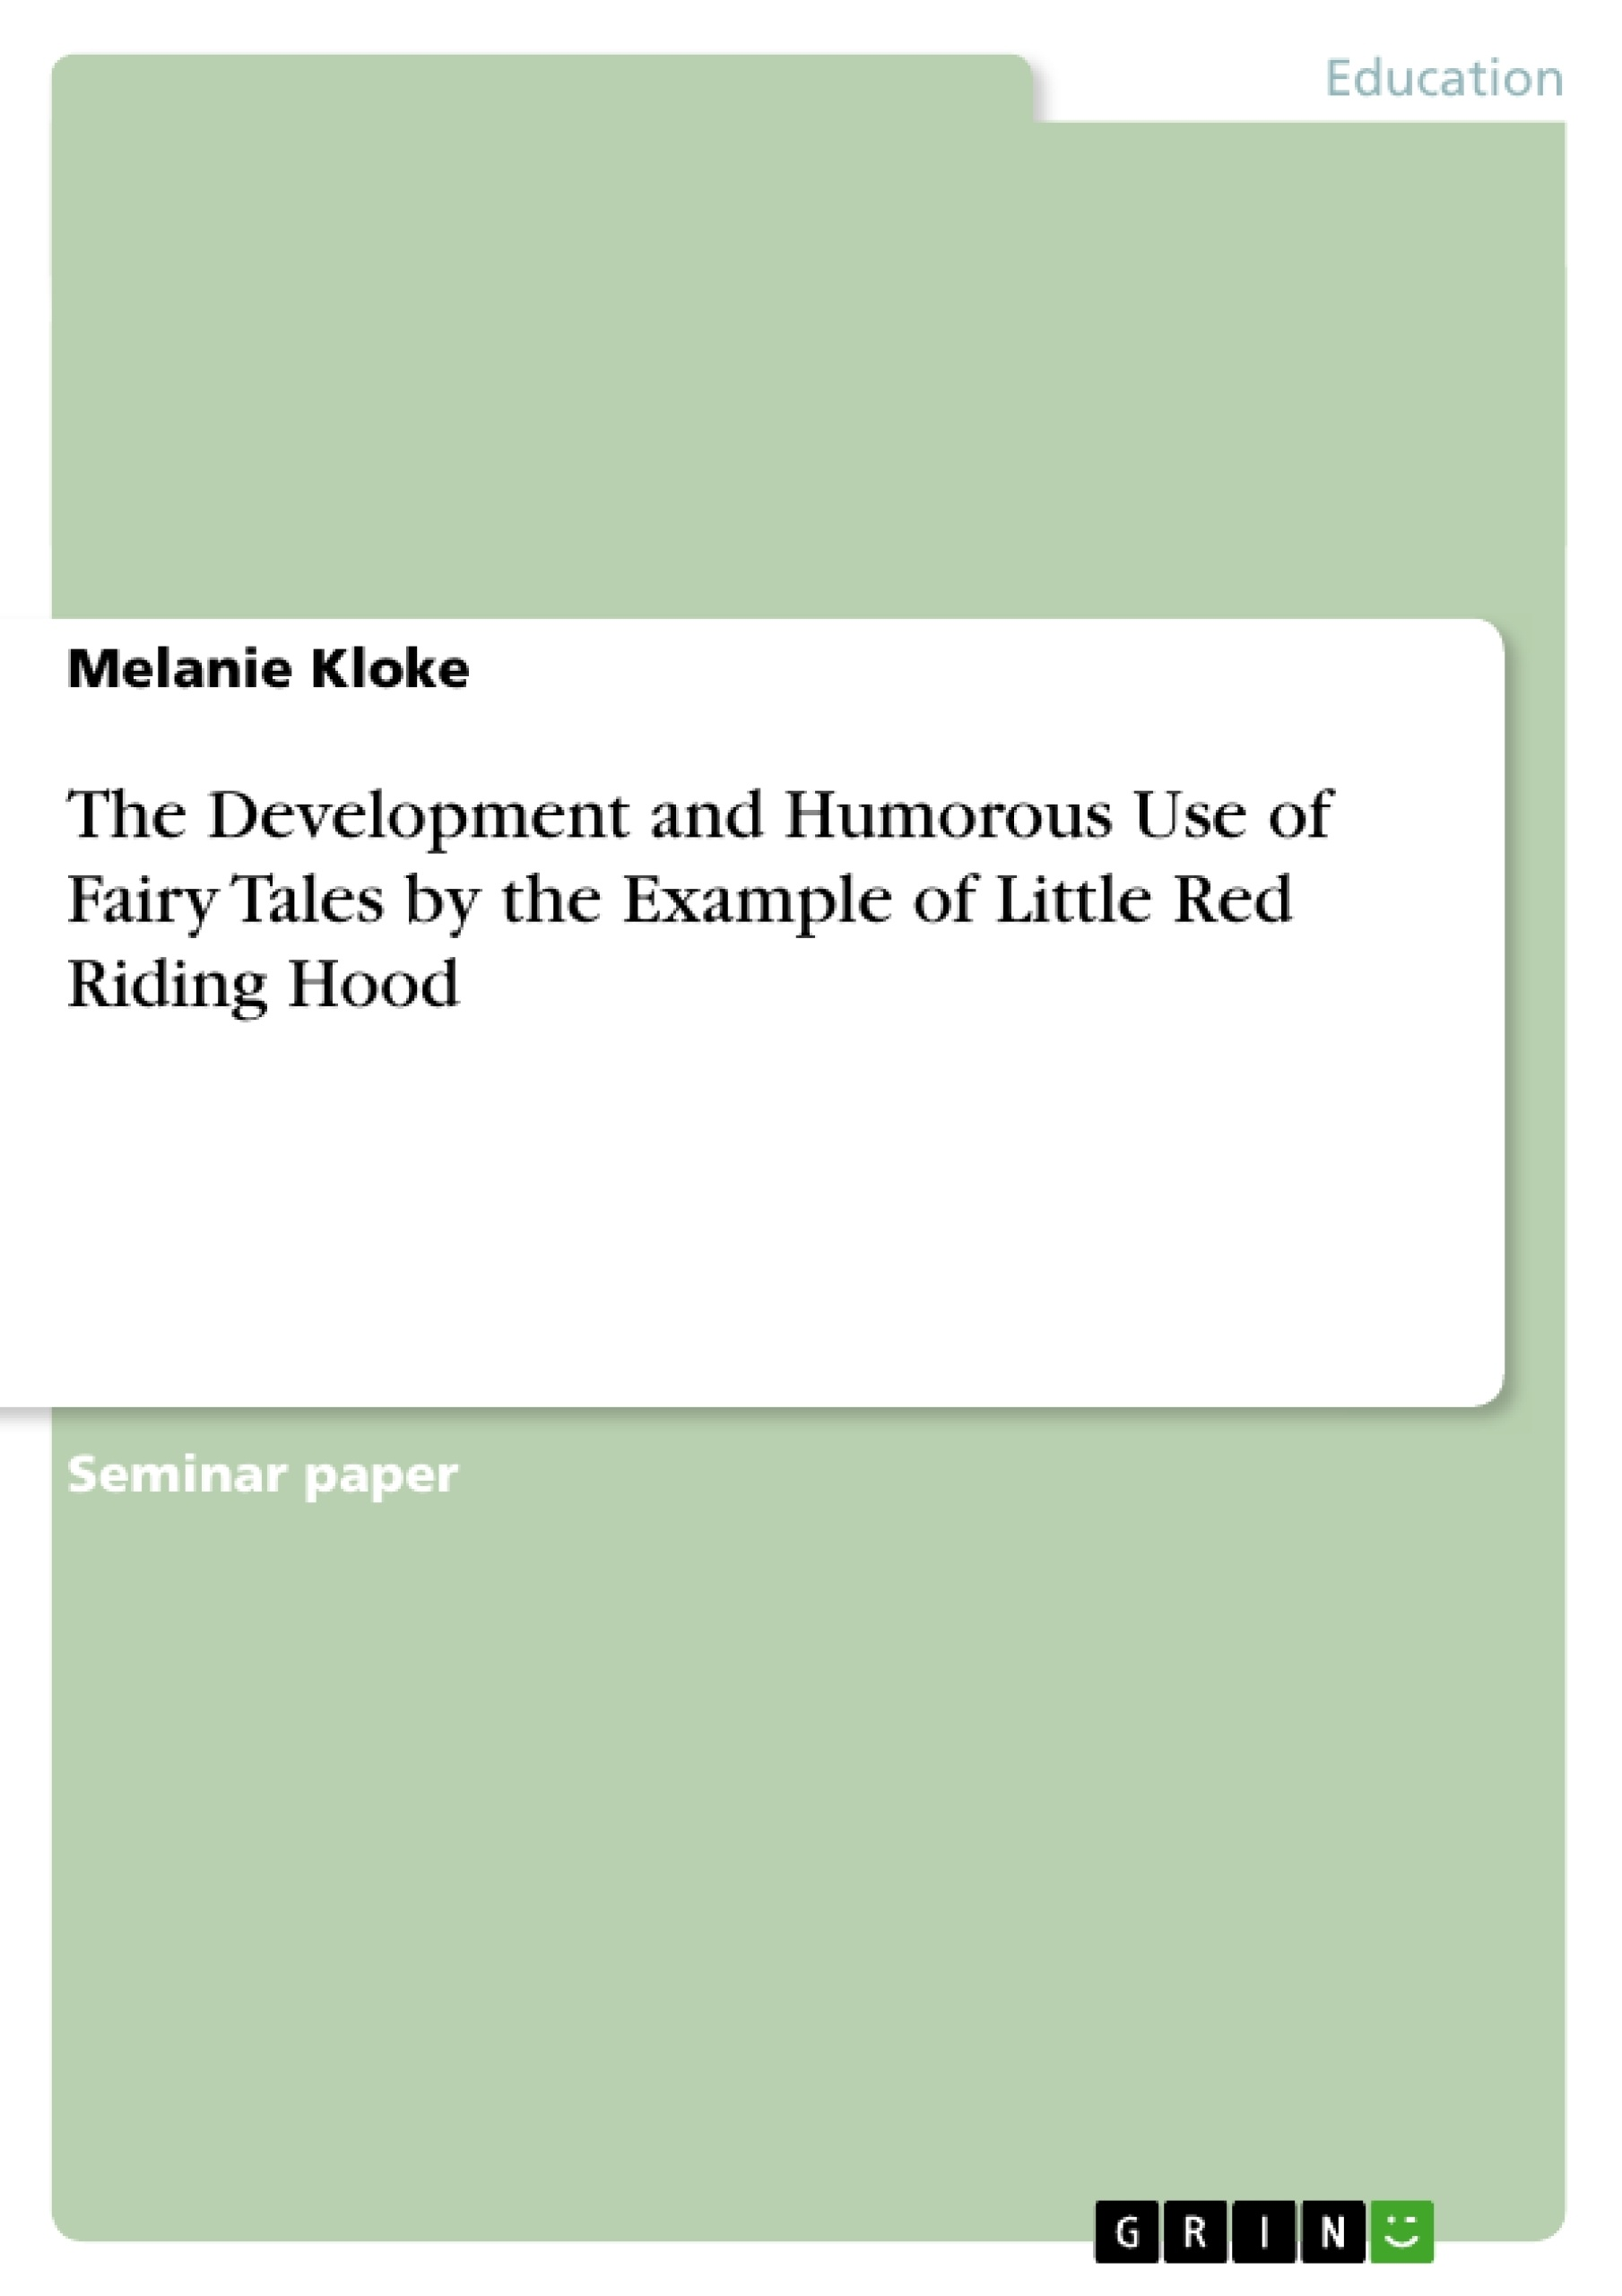 The Development and Humorous Use of Fairy Tales by the Example of Little Red Riding Hood